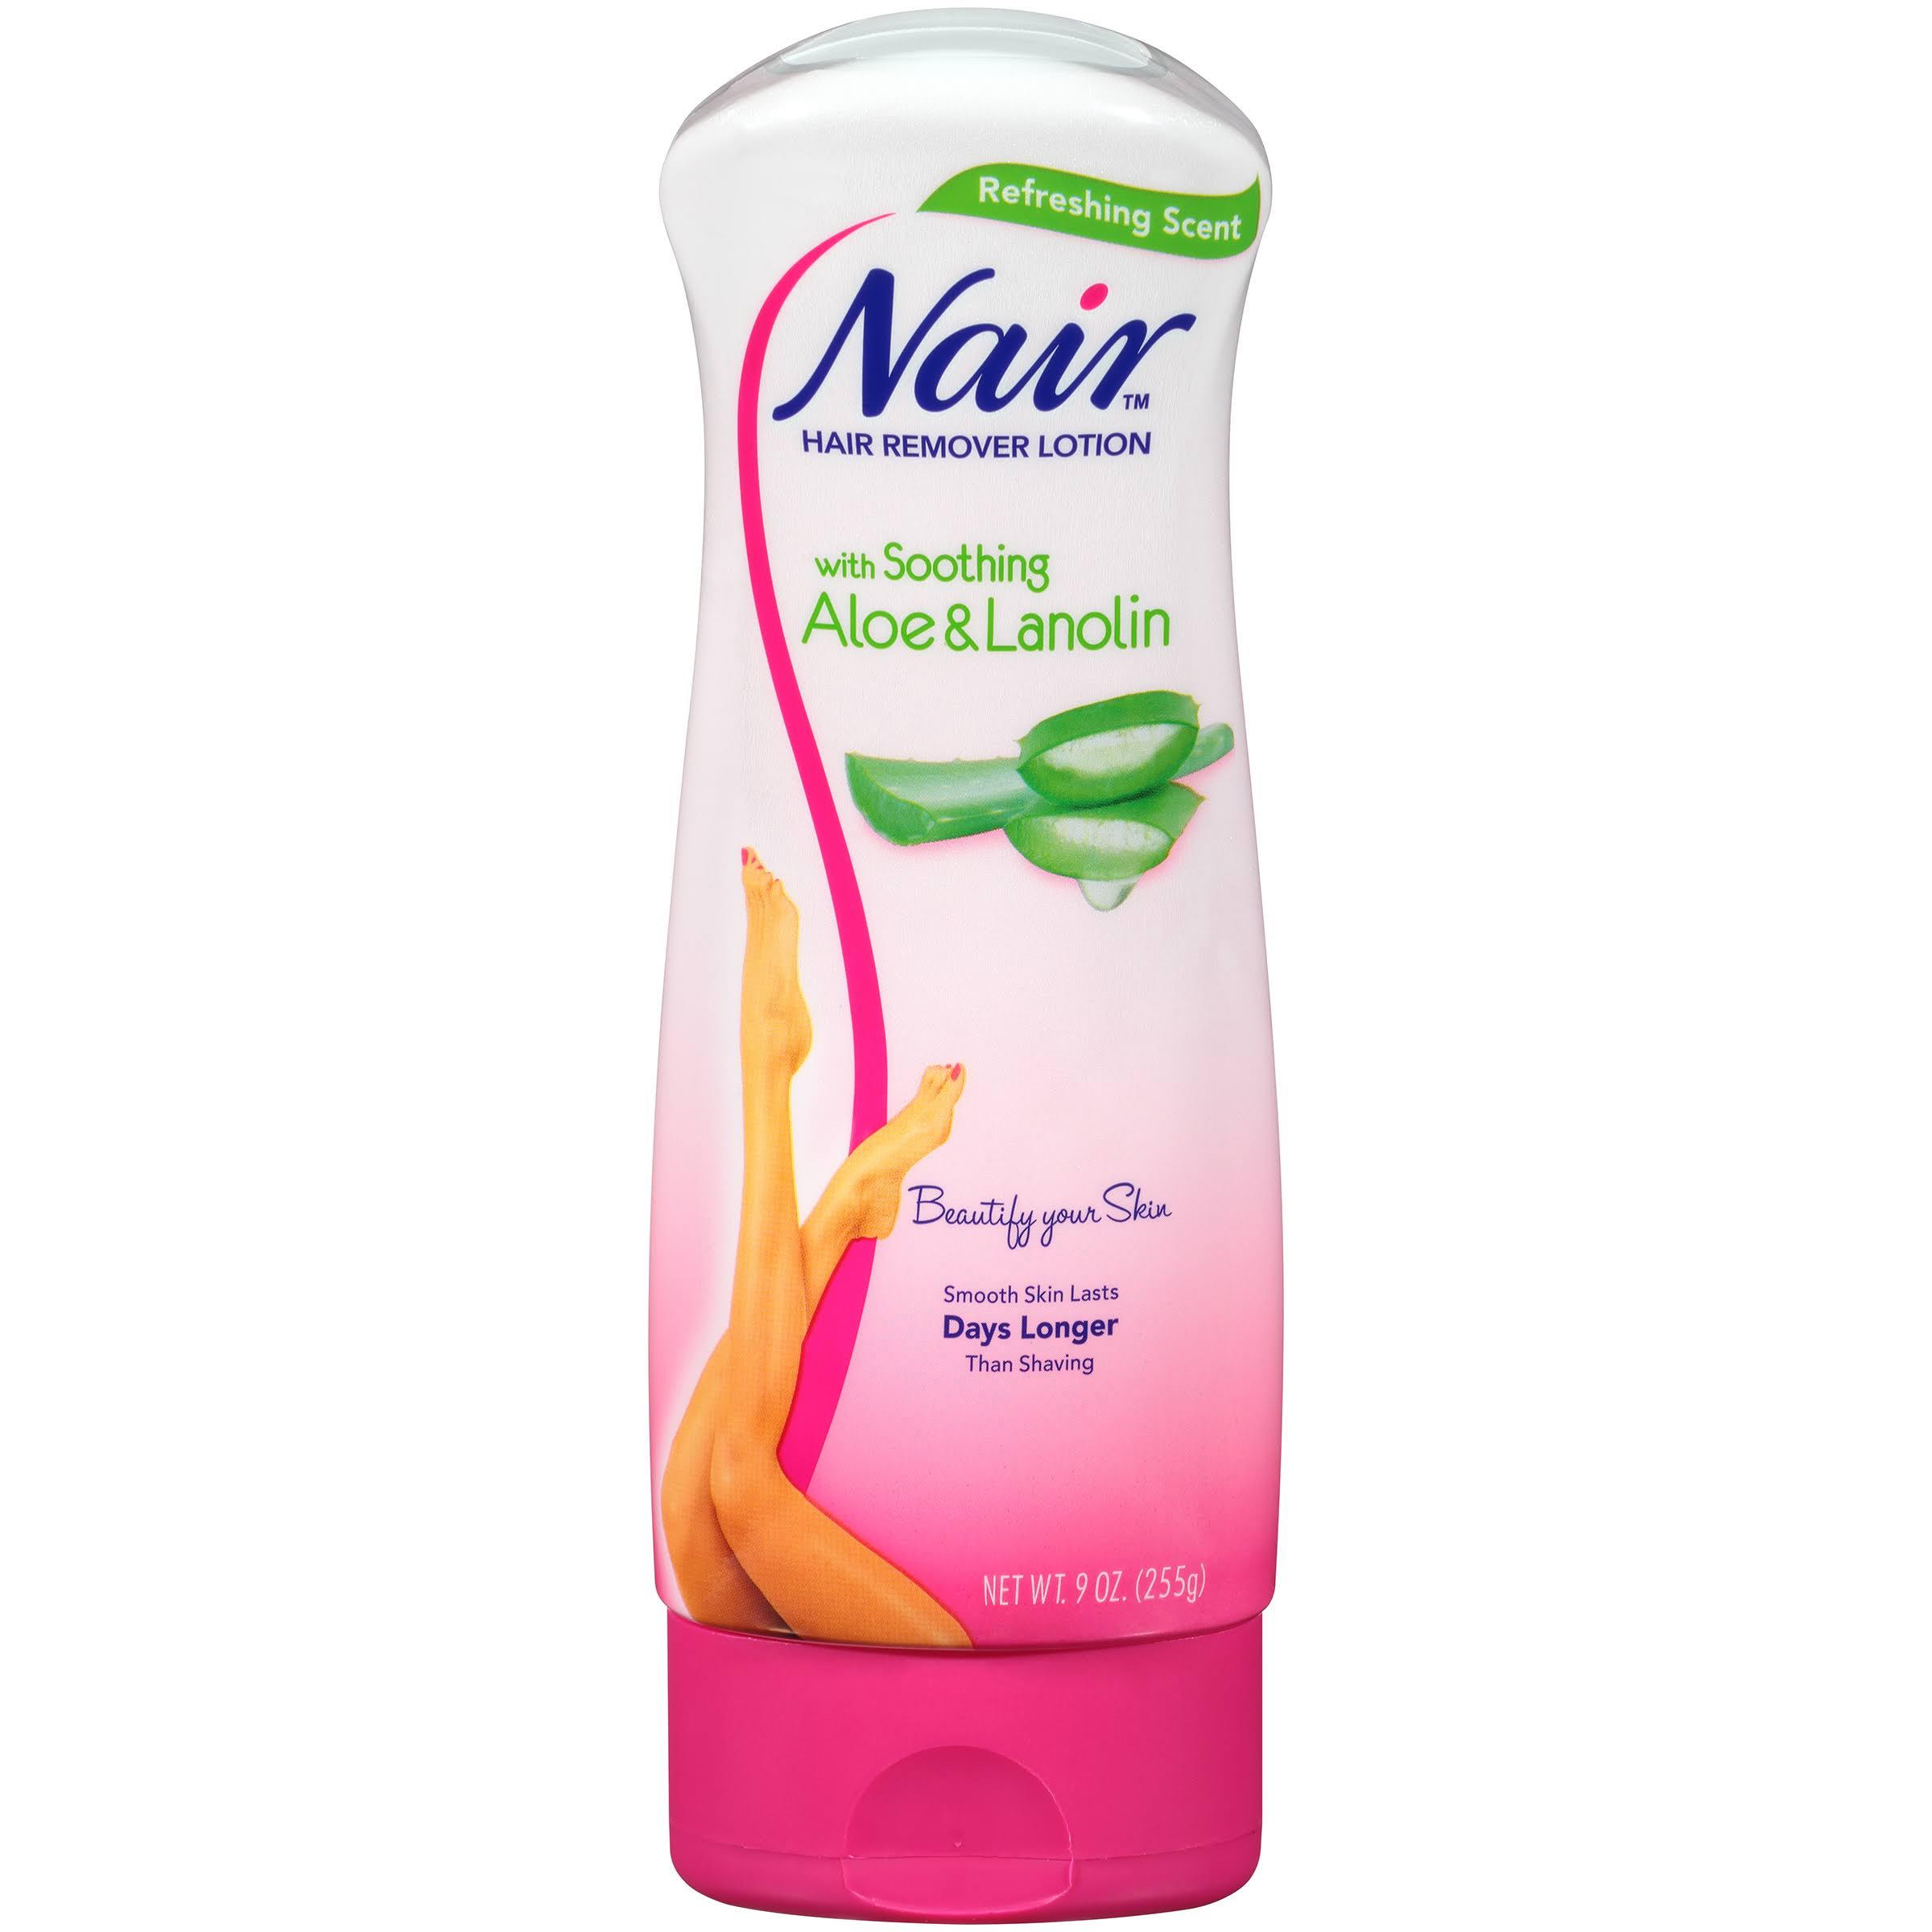 Nair Hair Remover Lotion - with Soothing Aloe and Lanolin, 9oz